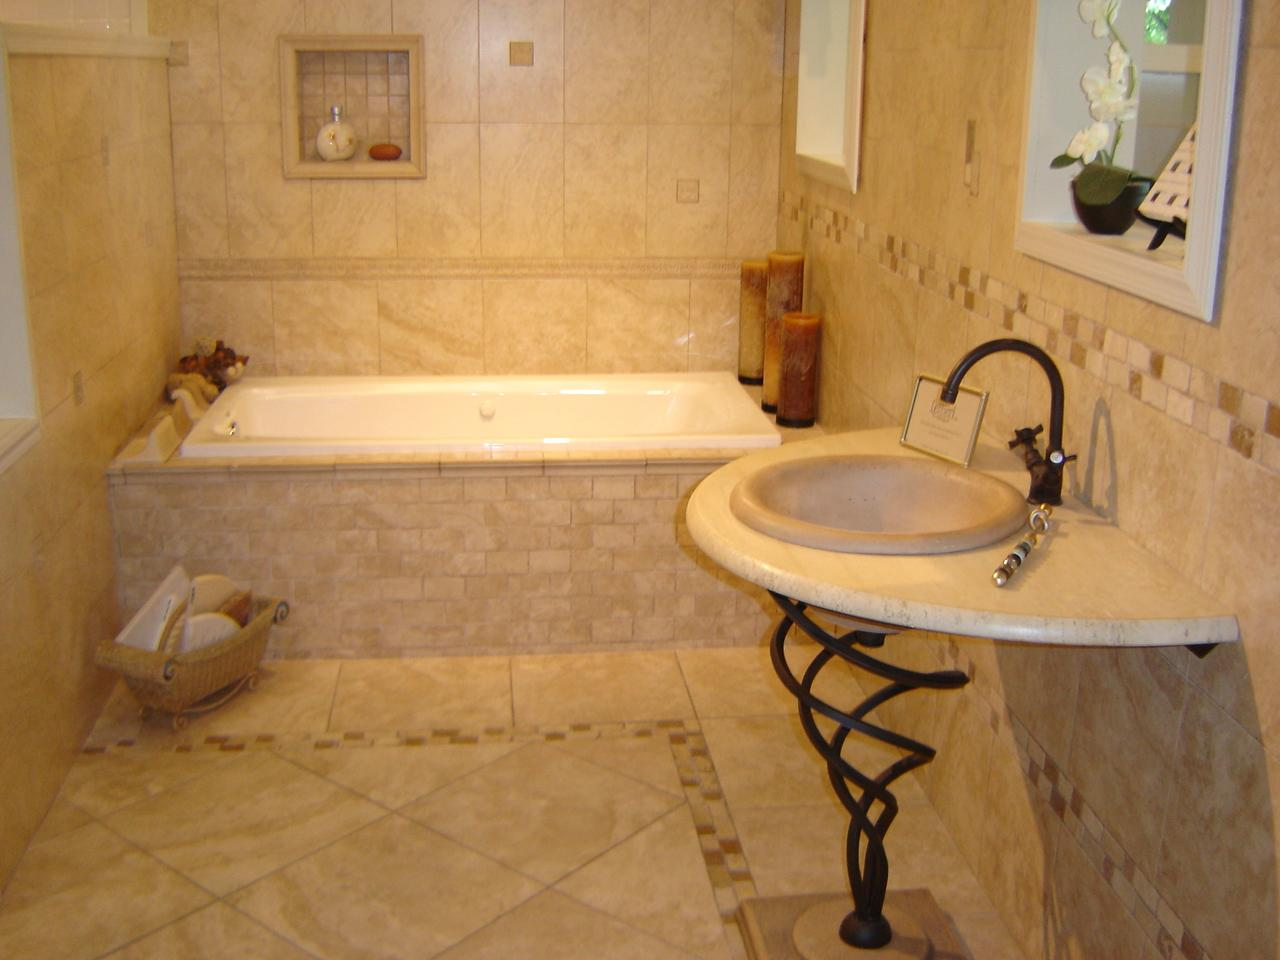 Tile designs for bathroom Photo - 1